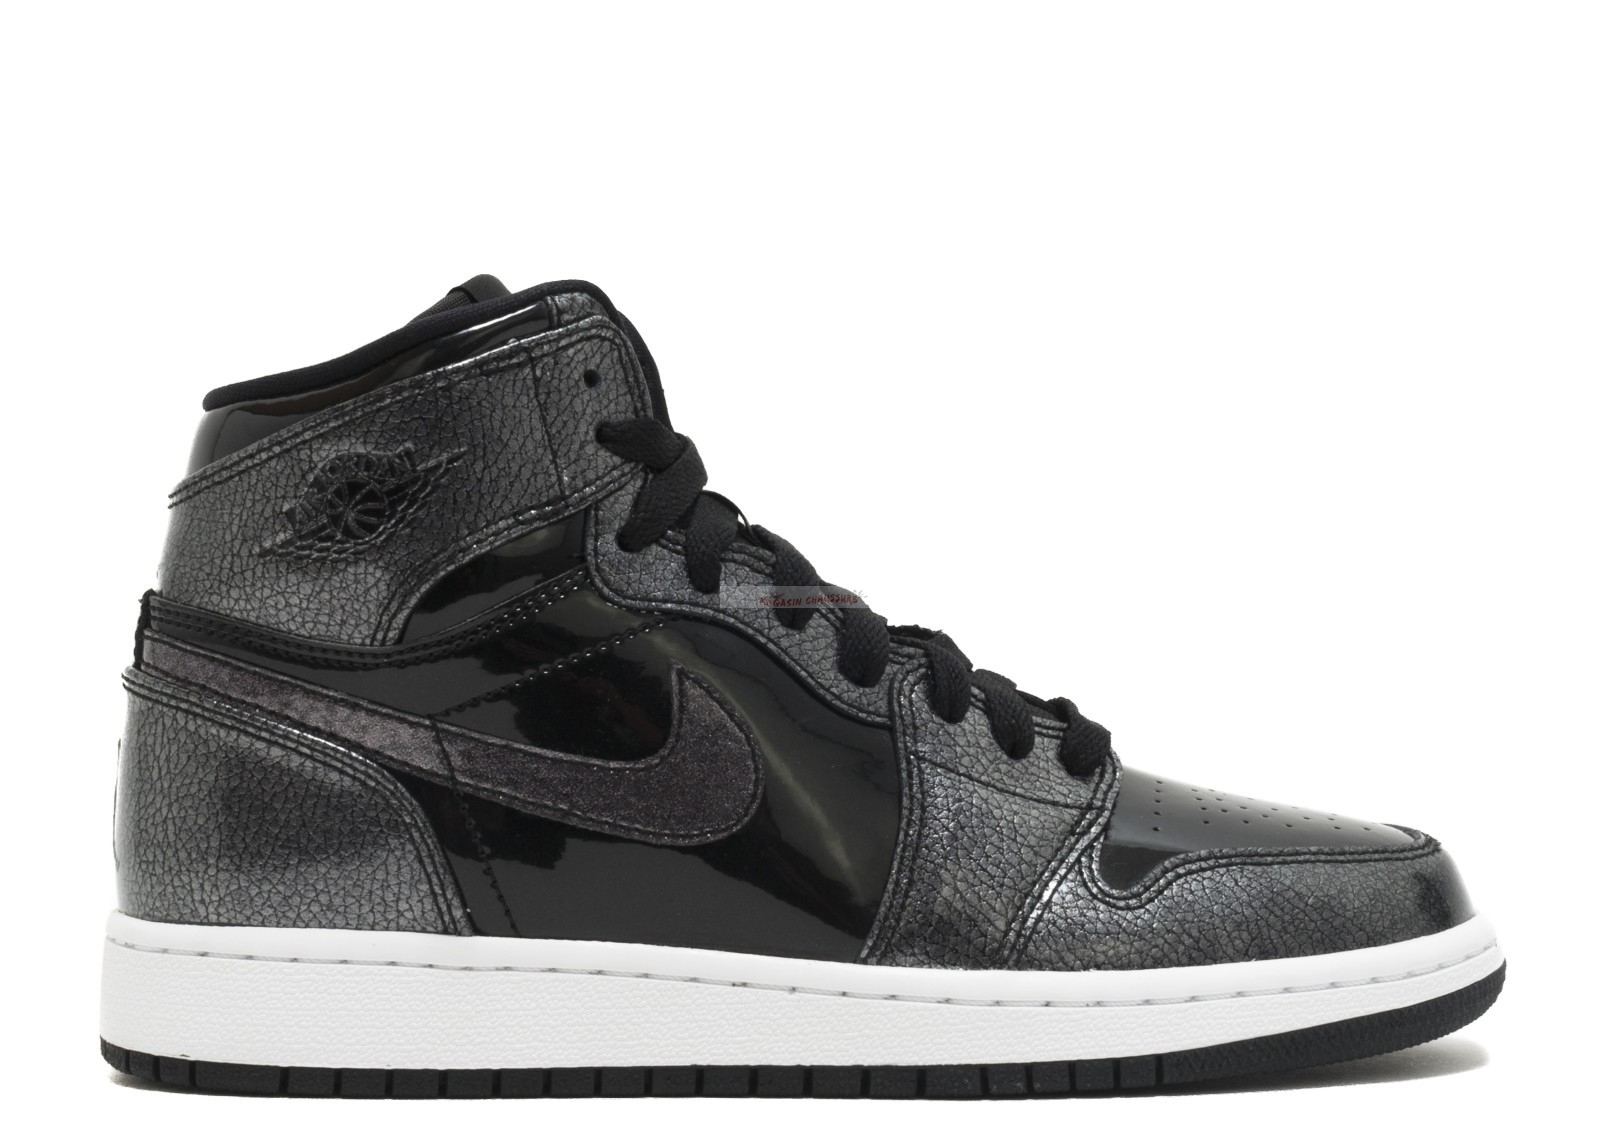 Air Jordan 1 Retro High Bg Noir (705300-017) Chaussure de Basket